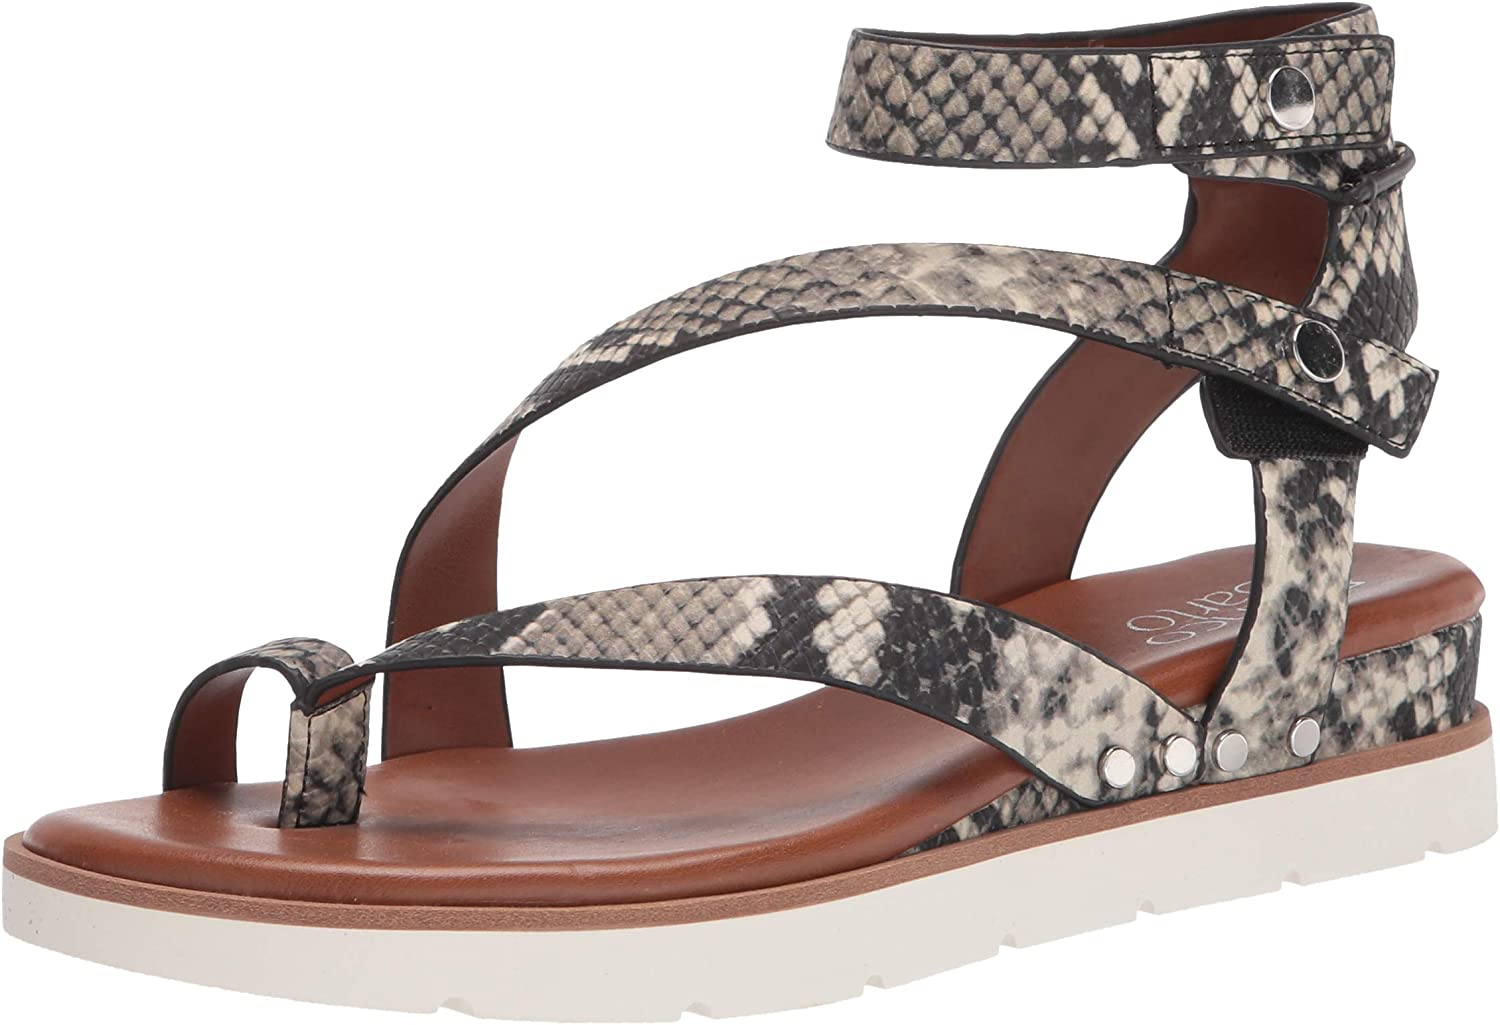 Sales of SALE items from new works Franco Sarto Women's Sandal overseas Daven